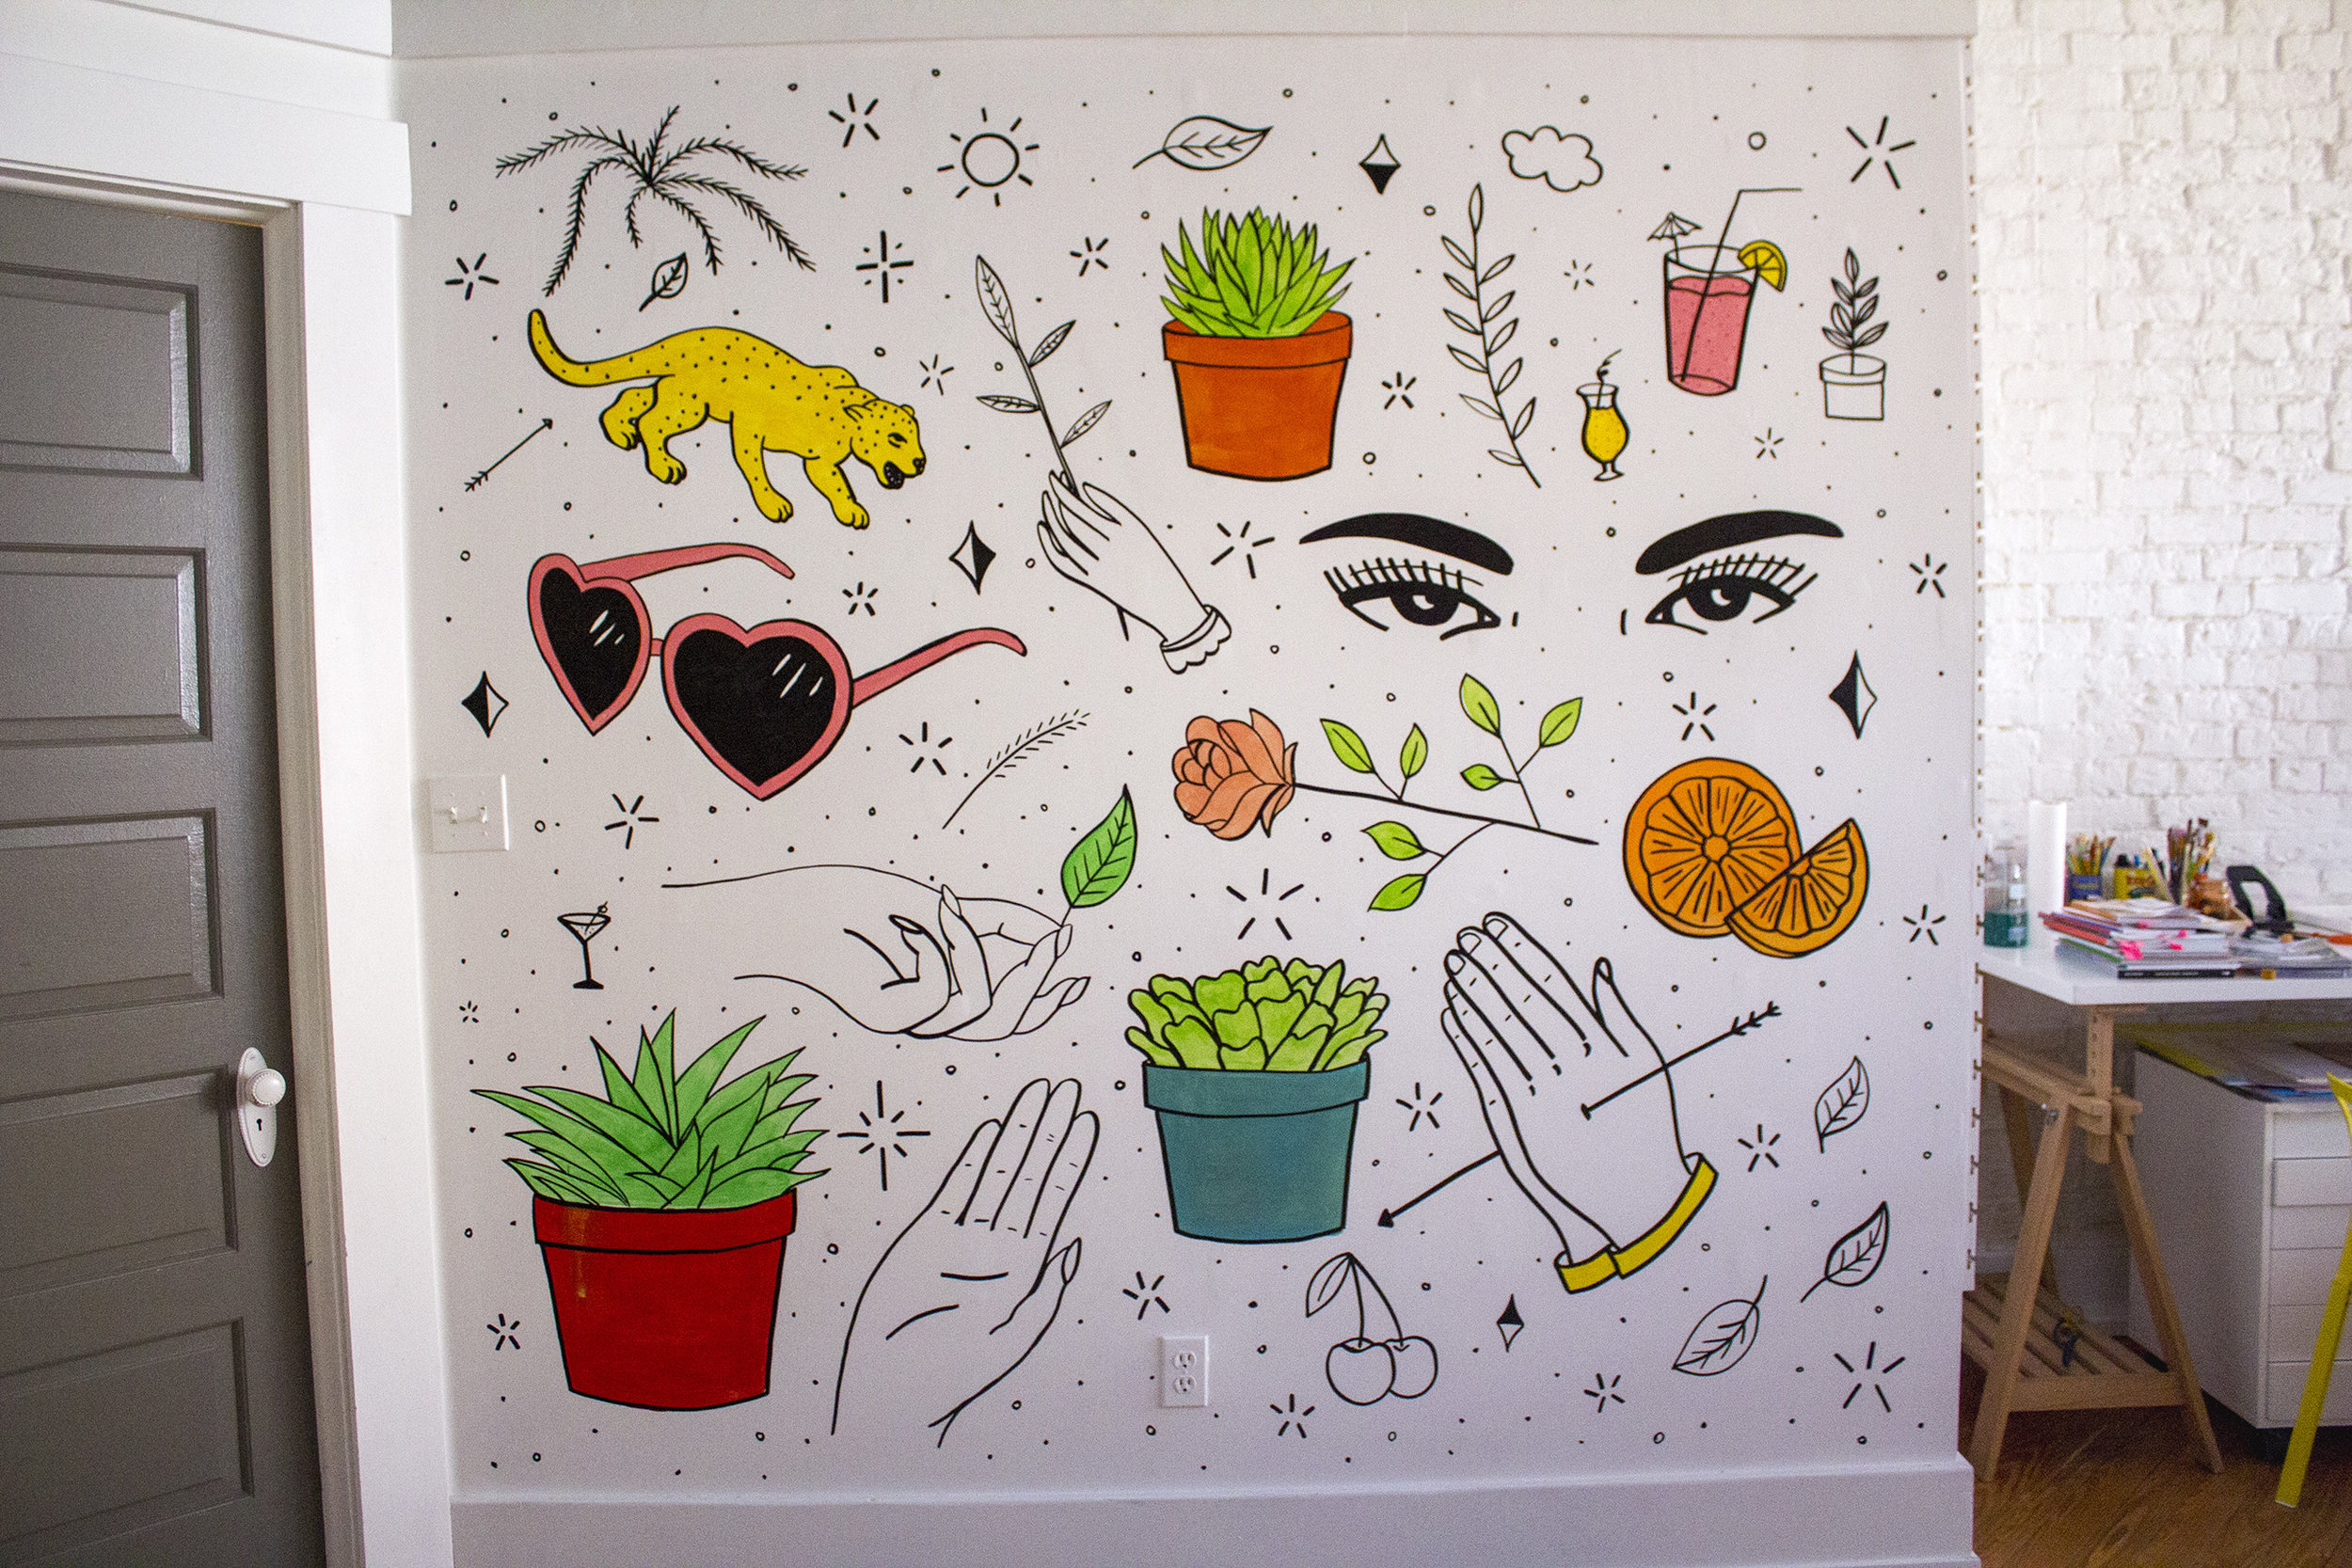 matt mcdole was our maker of the month and made this sweet mural for our space.